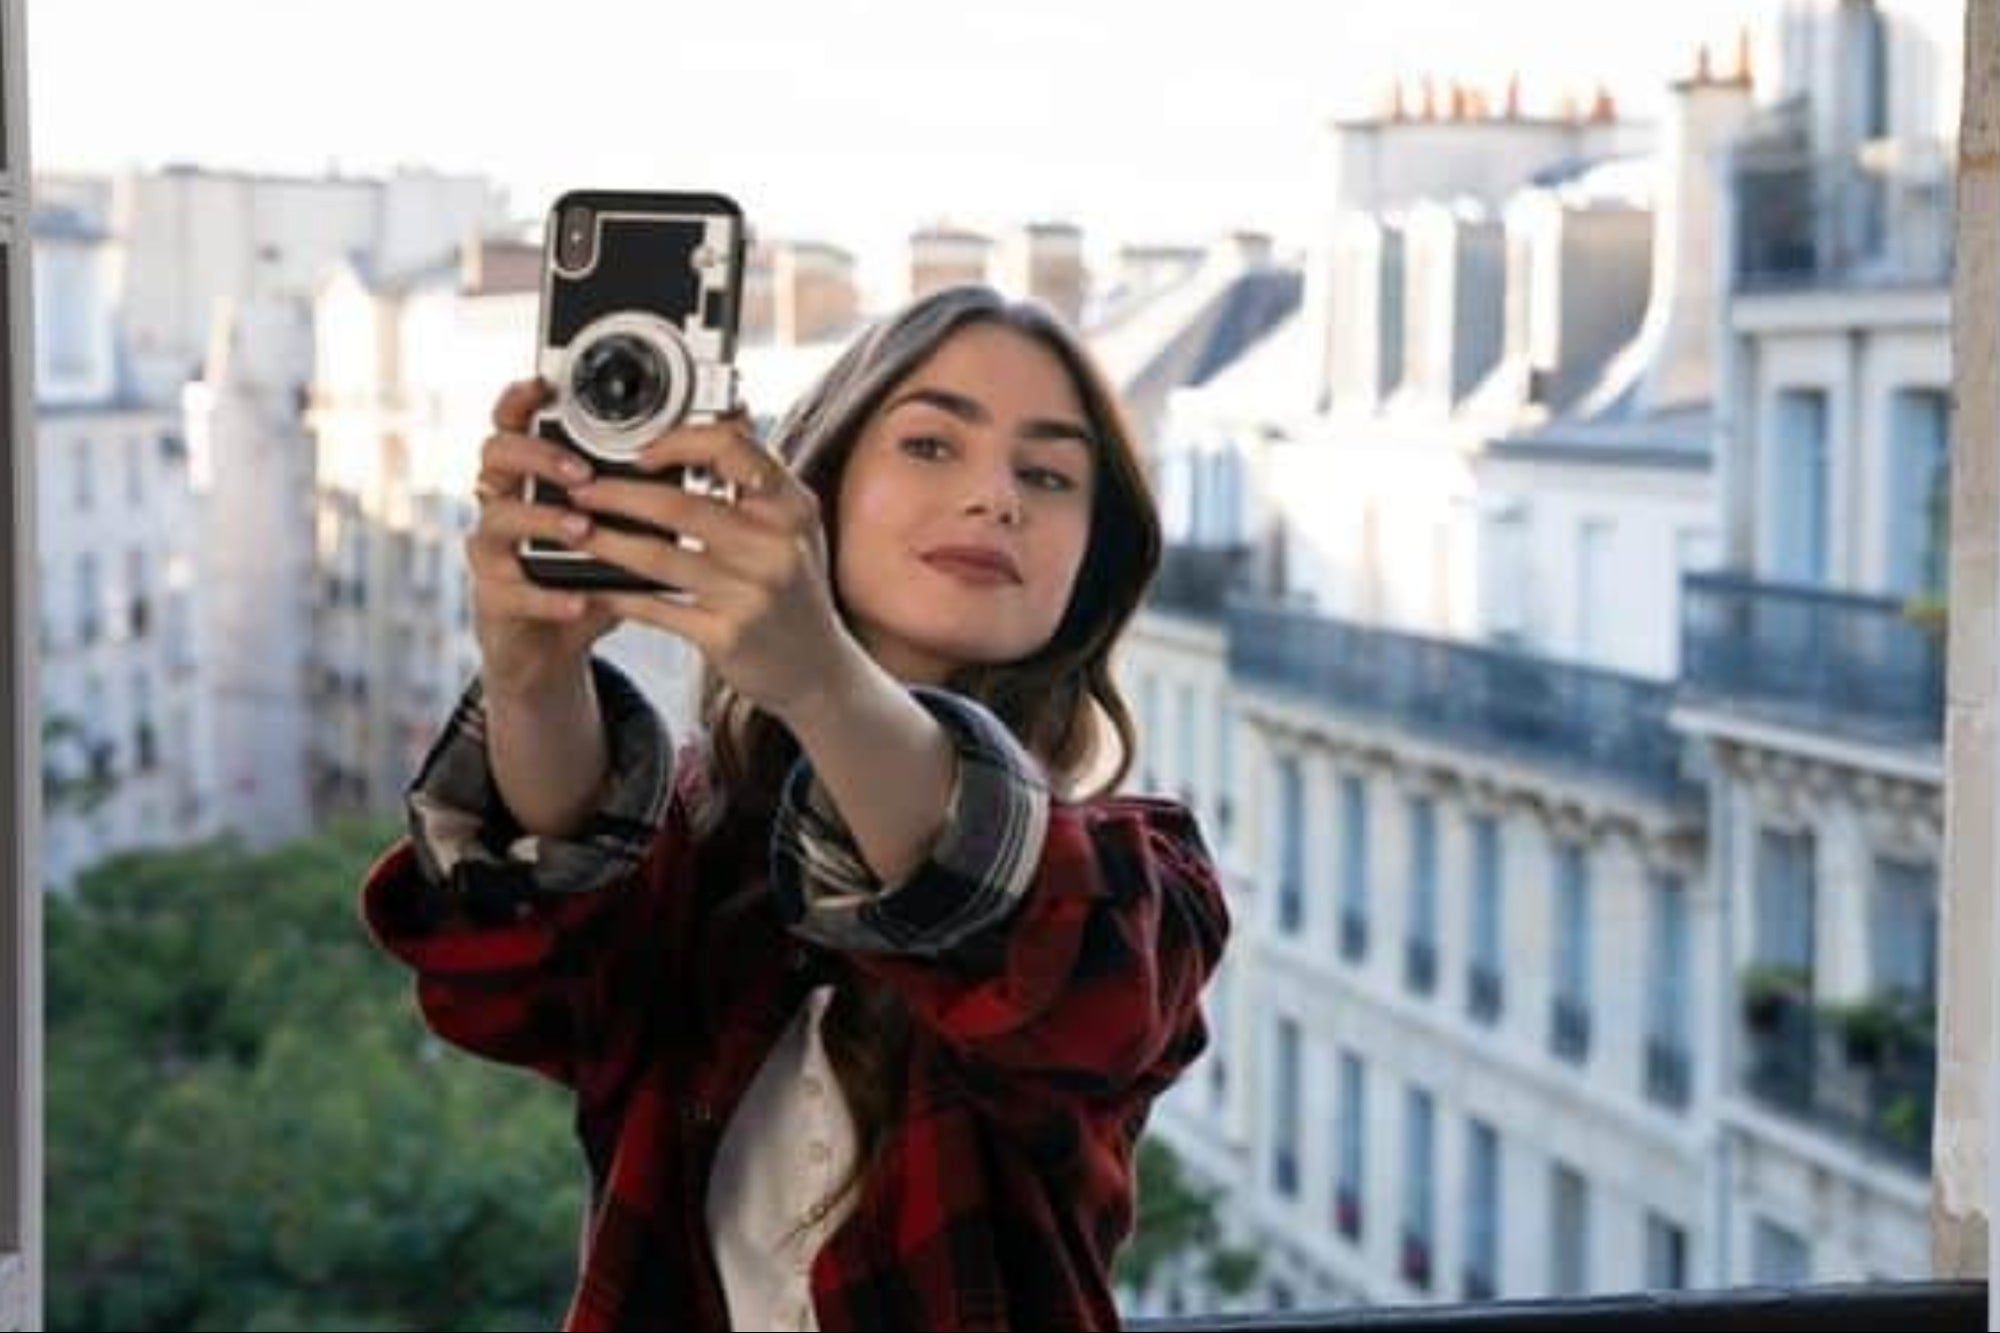 'Emily in Paris': The 3 mistakes in digital marketing of the Netflix series